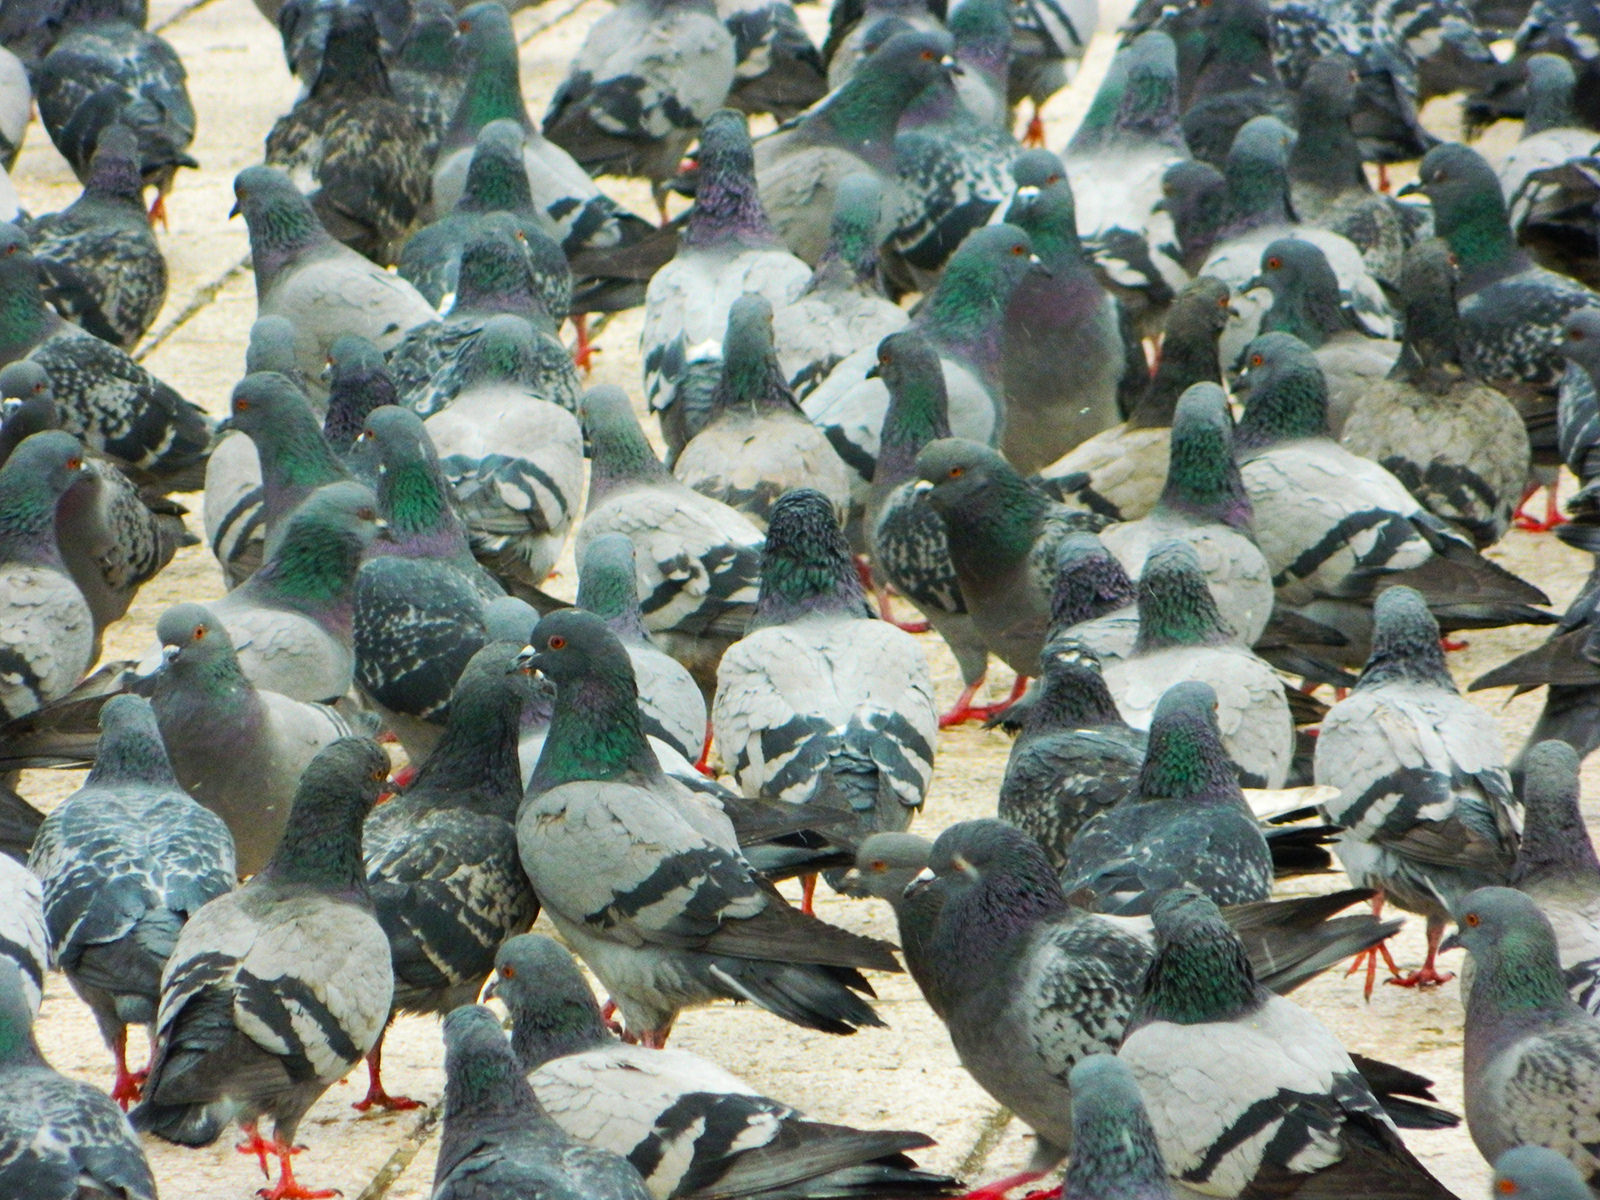 pigeon control spikes